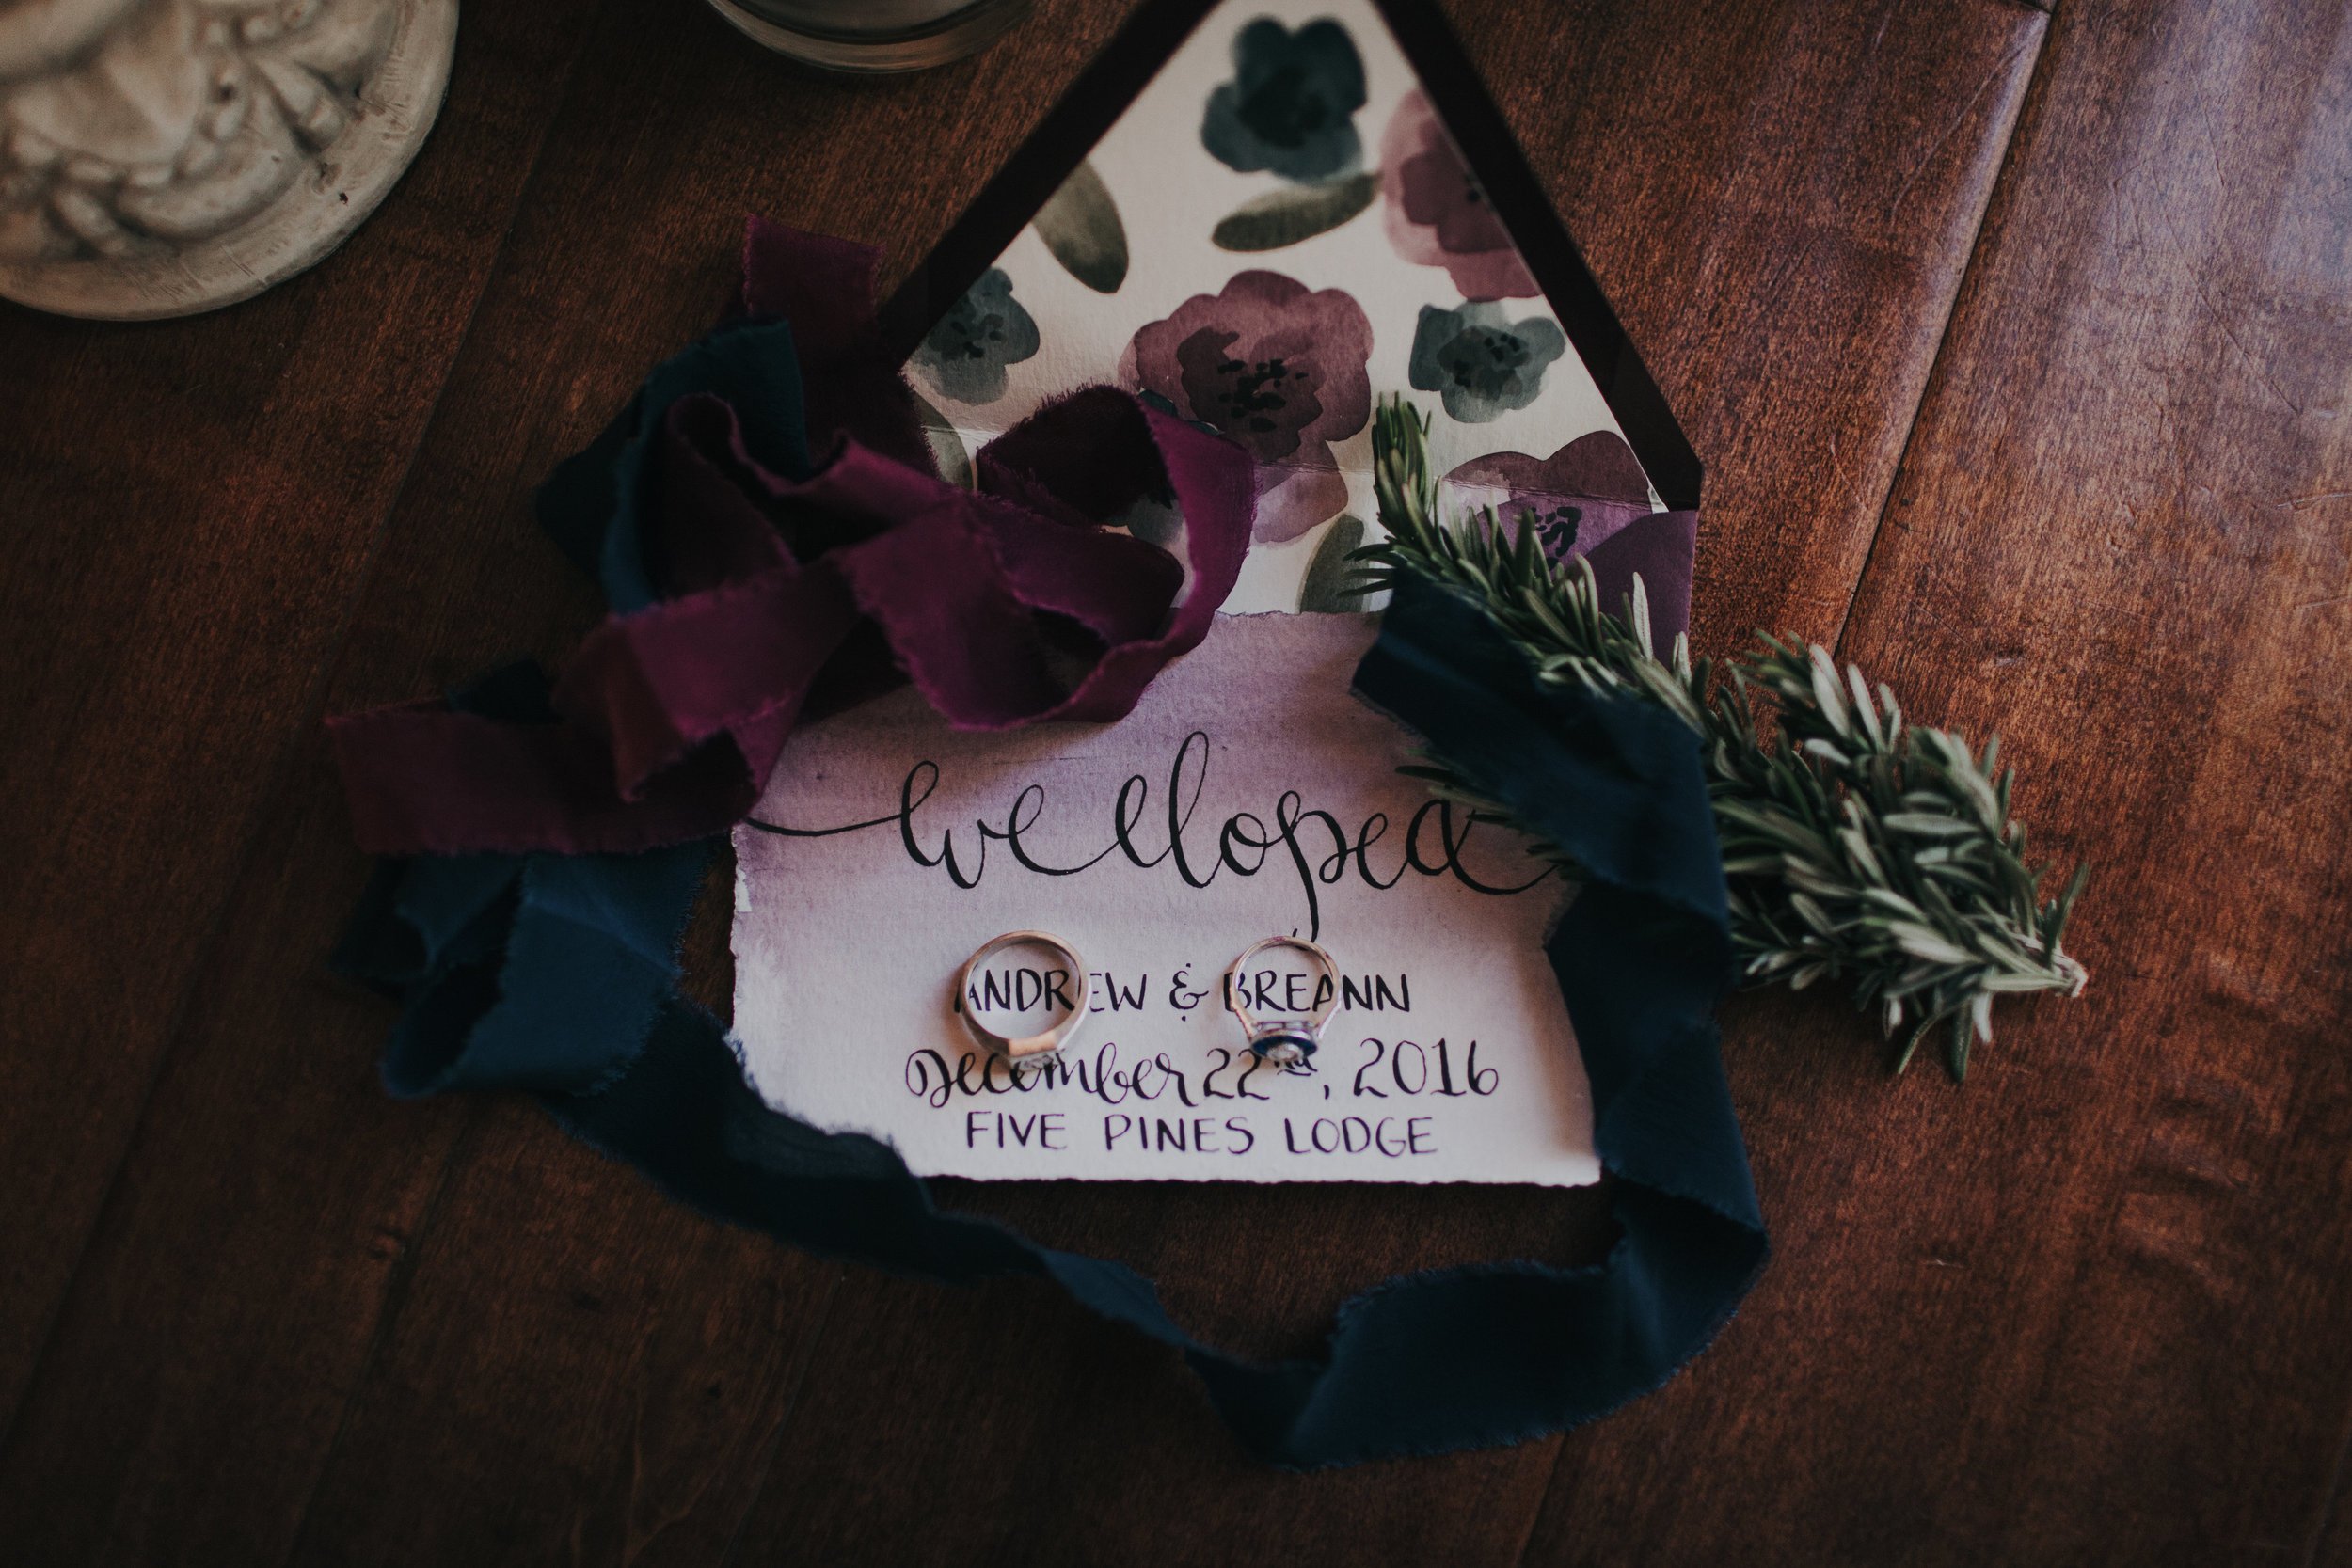 five pine lodge elopement invitation Bend Central Oregon Destination Wedding Planner Designer